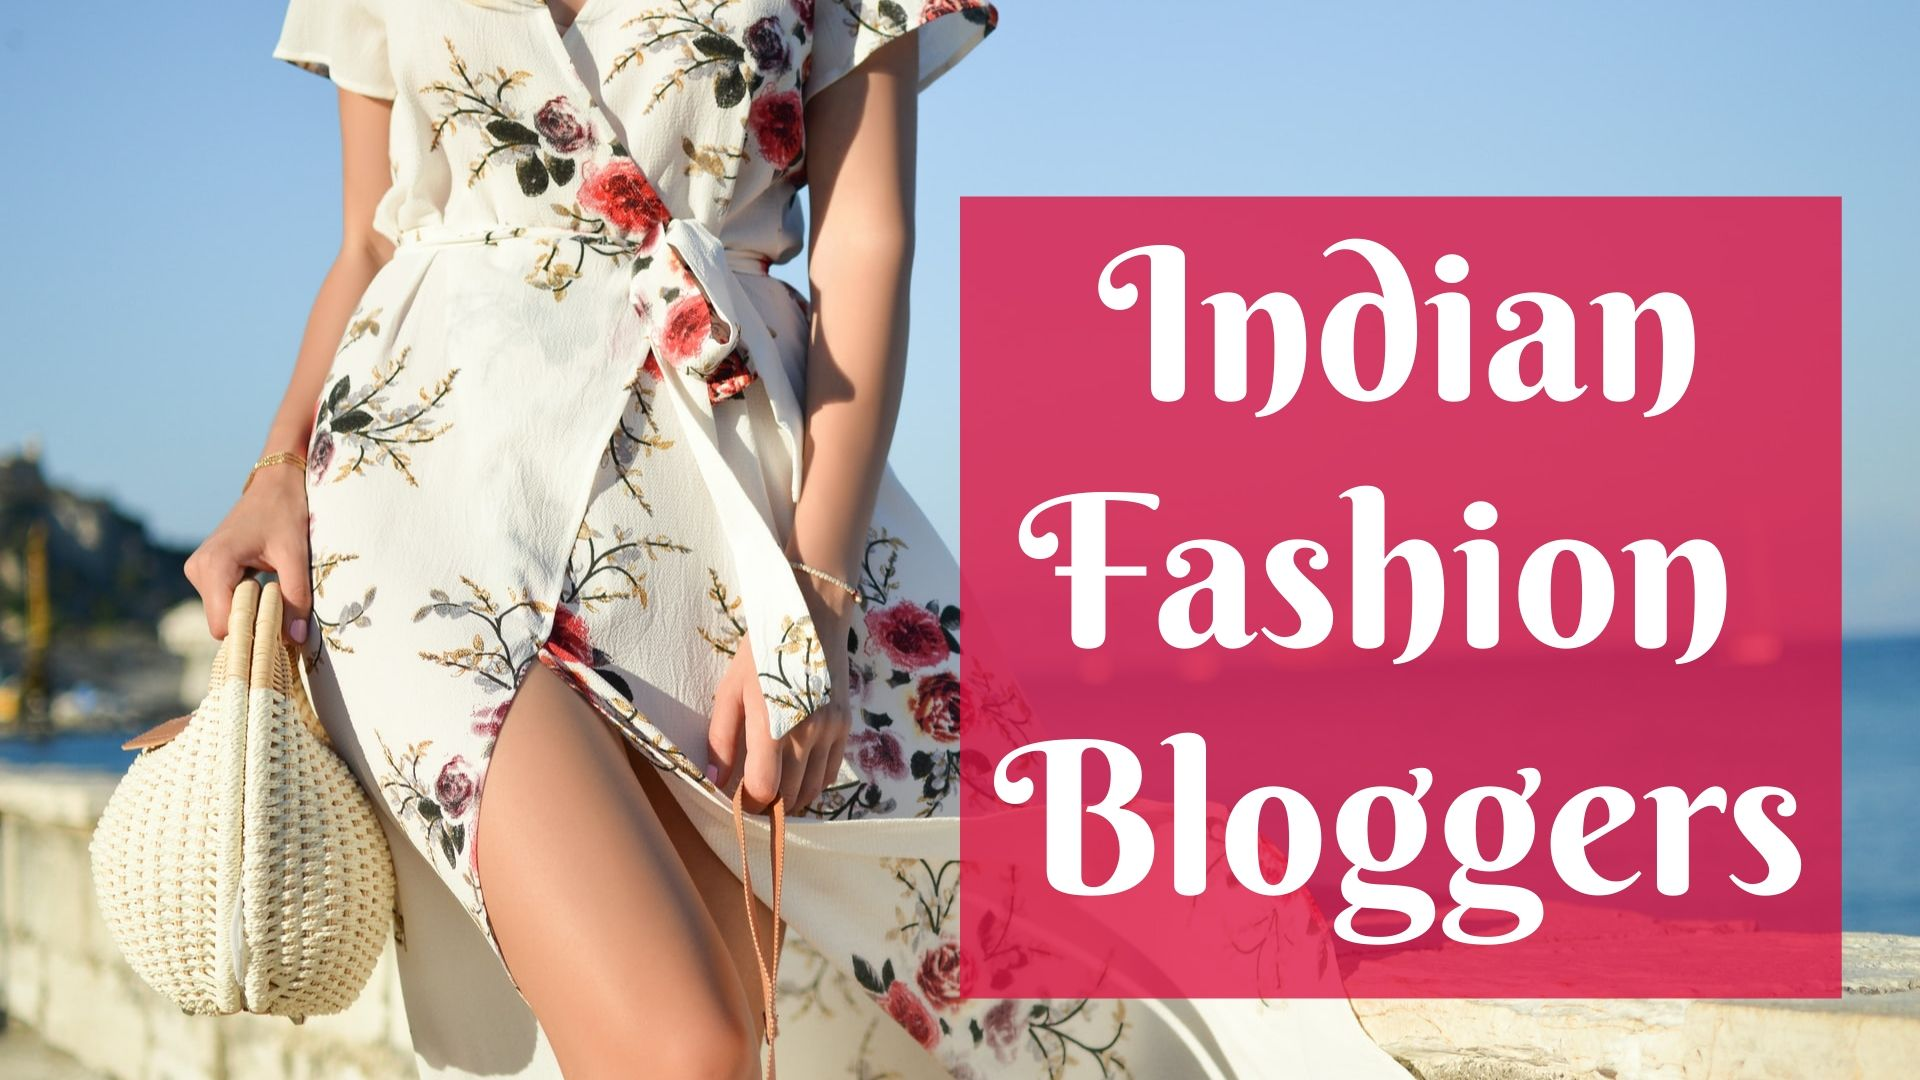 Indian fashion bloggers